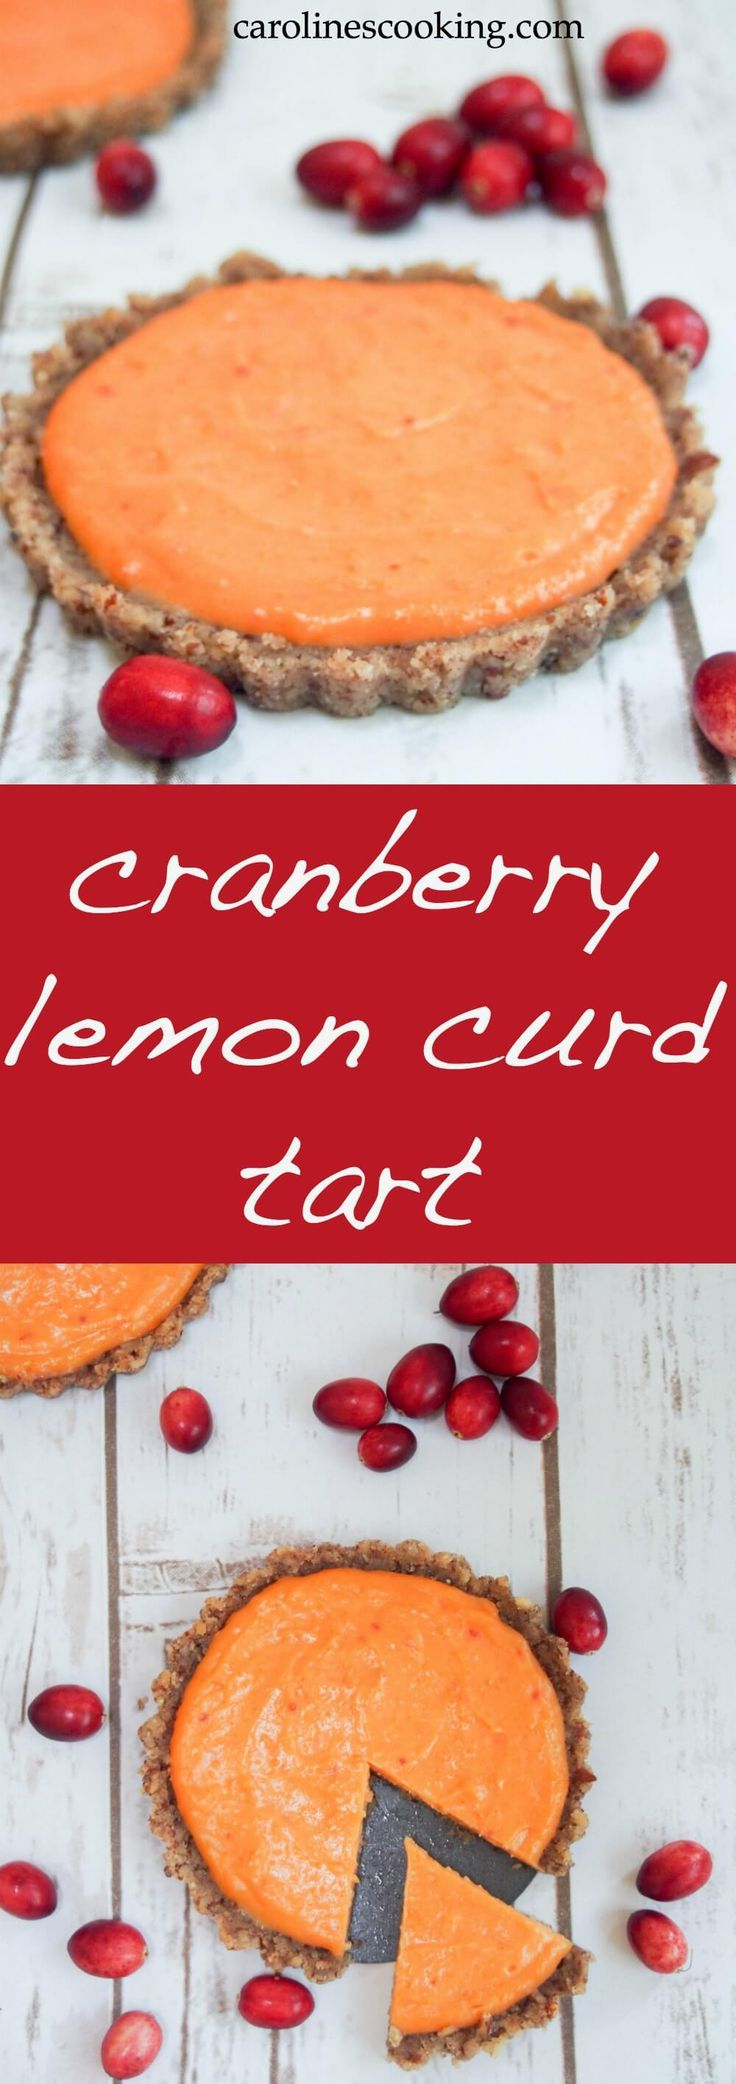 This cranberry lemon curd tart is as delicious as it is pretty. The fresh zesty topping goes so well with the nutty base. Plus it's no bake and gluten-free.